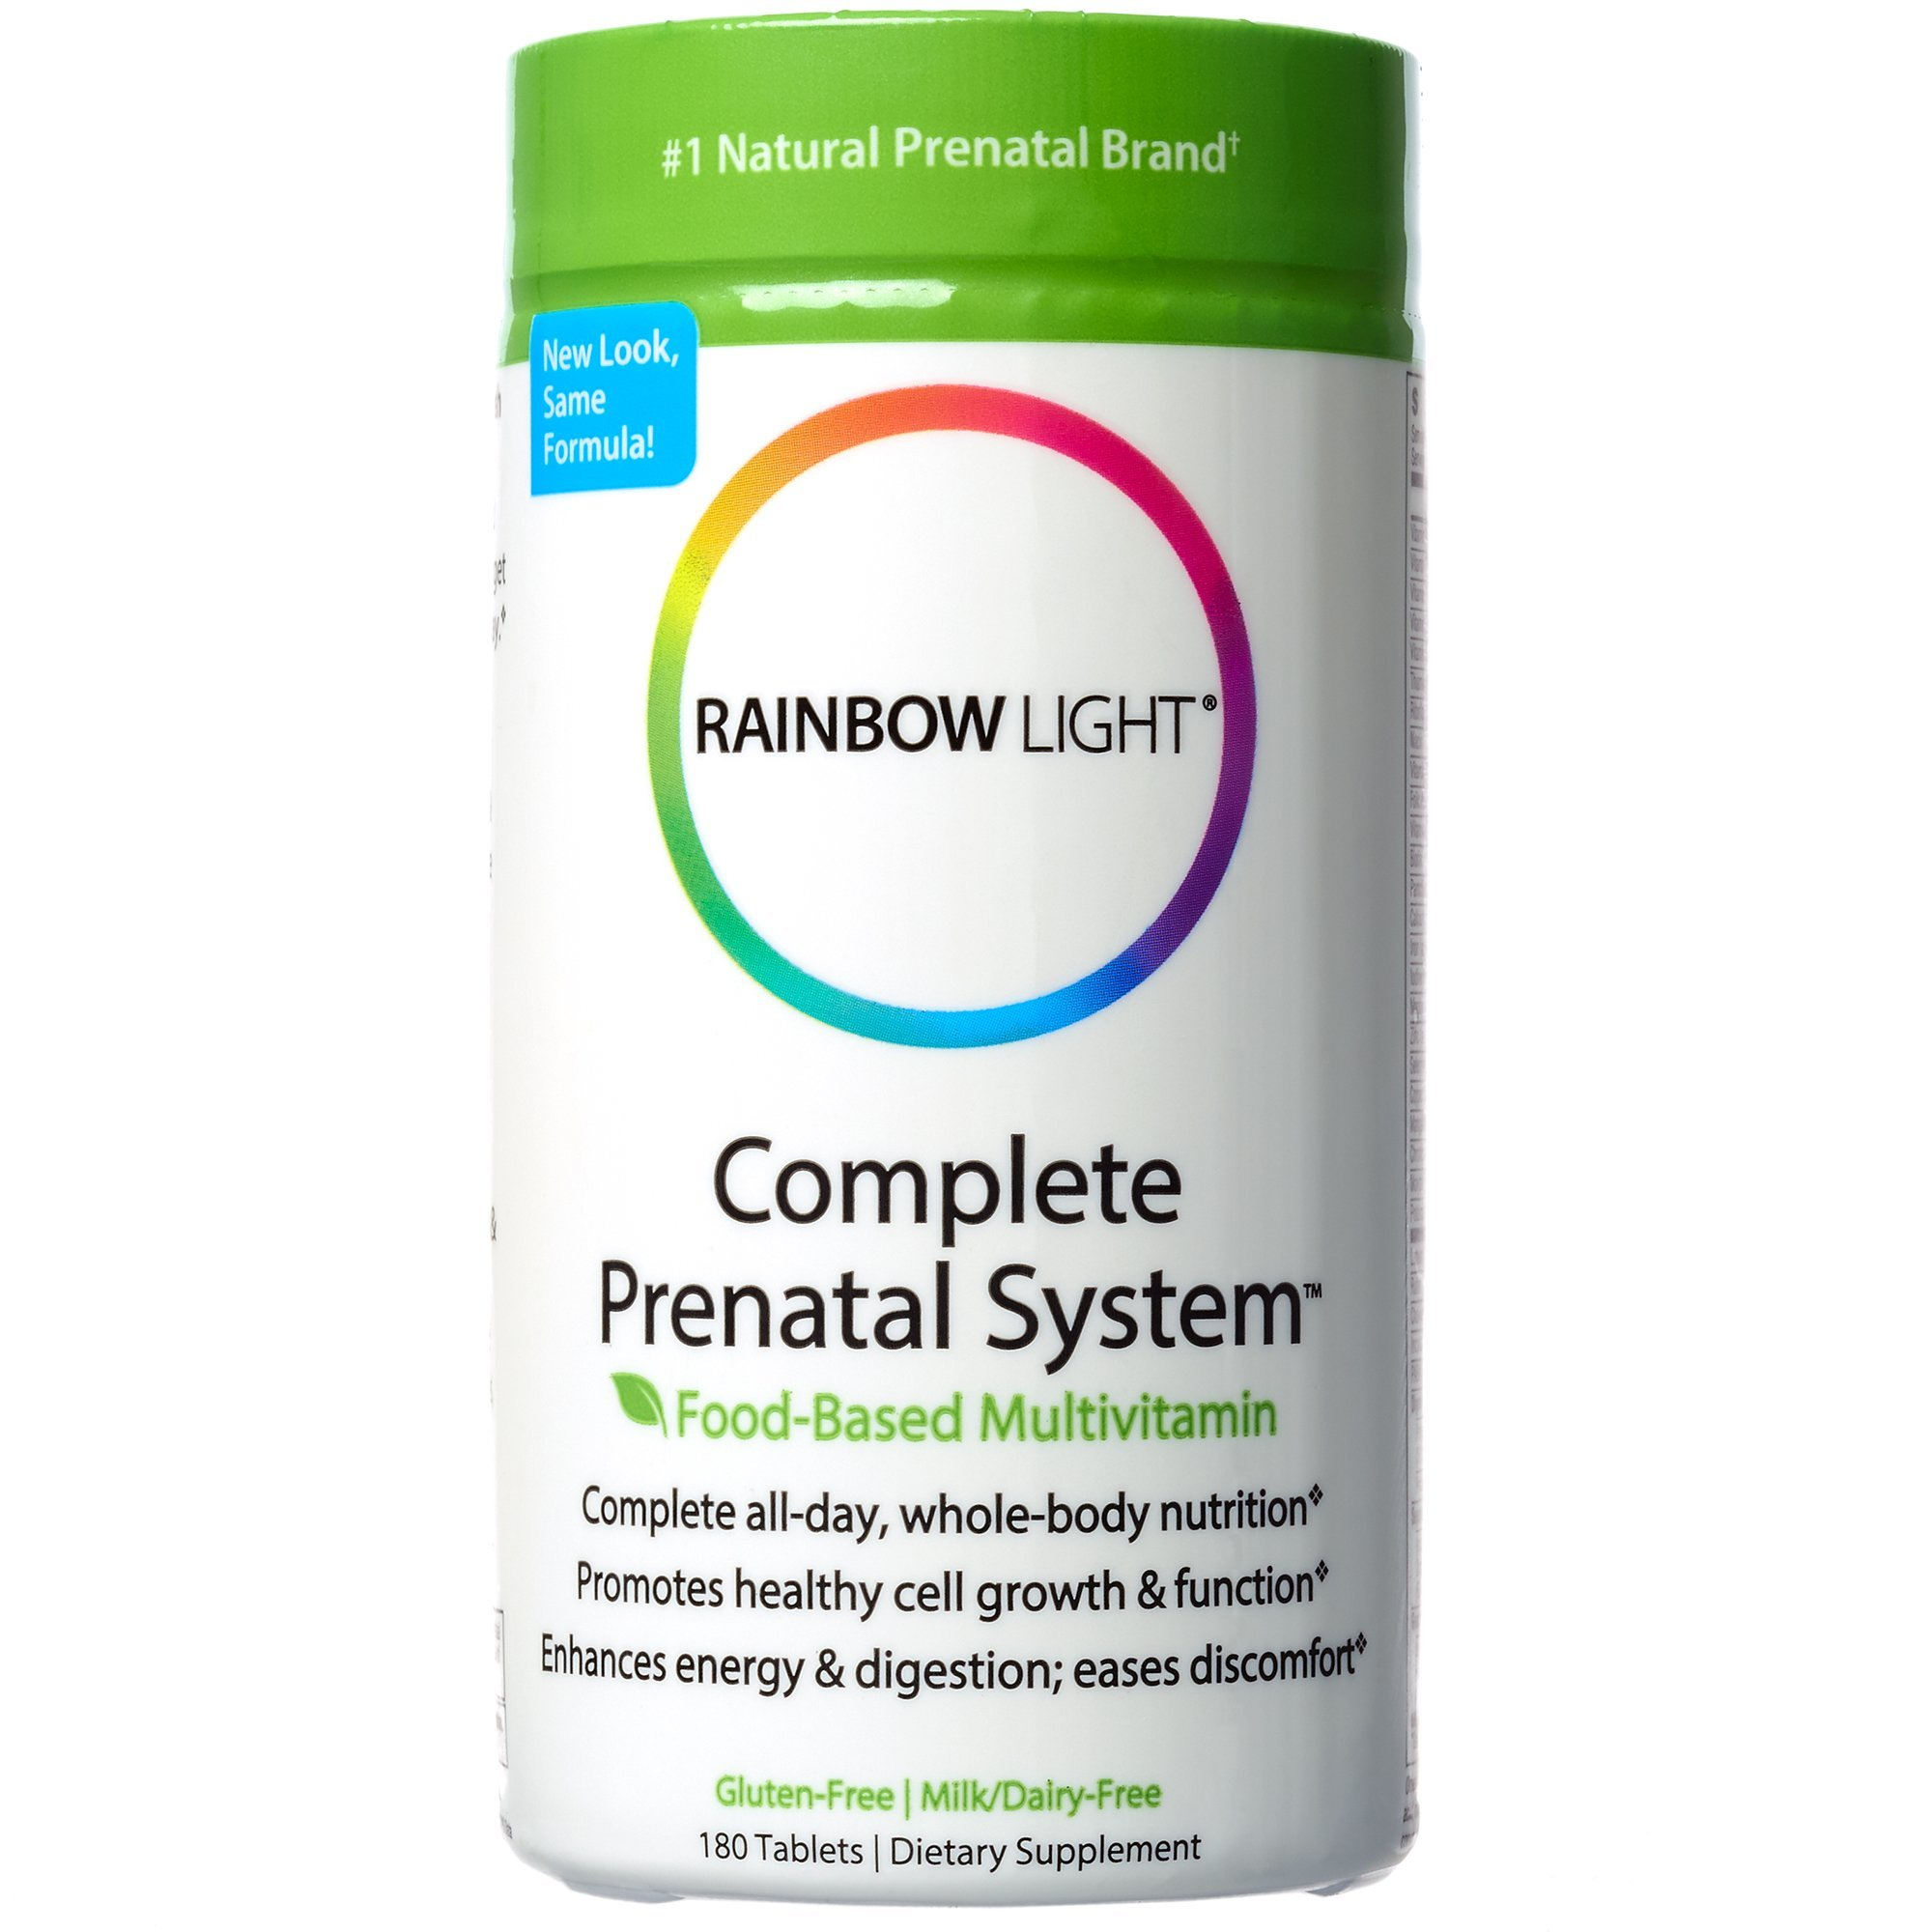 Rainbow Light - Complete Prenatal System, Food-Based Multivitamin Support for Fetal Development, Energy and Digestion with Folic Acid, Choline, and Probiotics, Gluten-Free, Dairy-Free, 180 Tablets